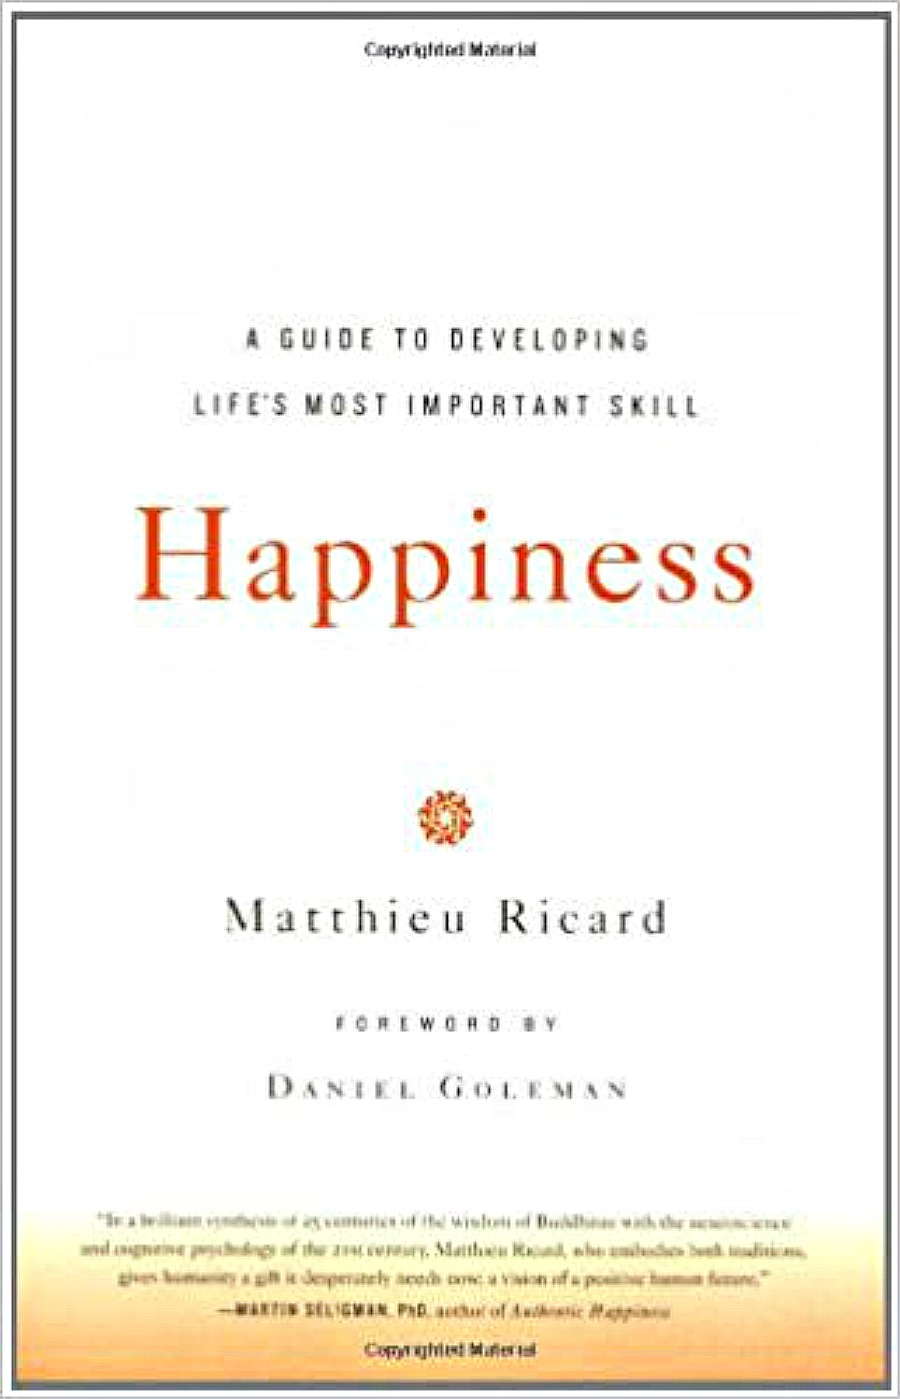 Is happiness an invention of mankind? Is it attainable, or is it something we fruitlessly pursue because we have all our basic needs met?